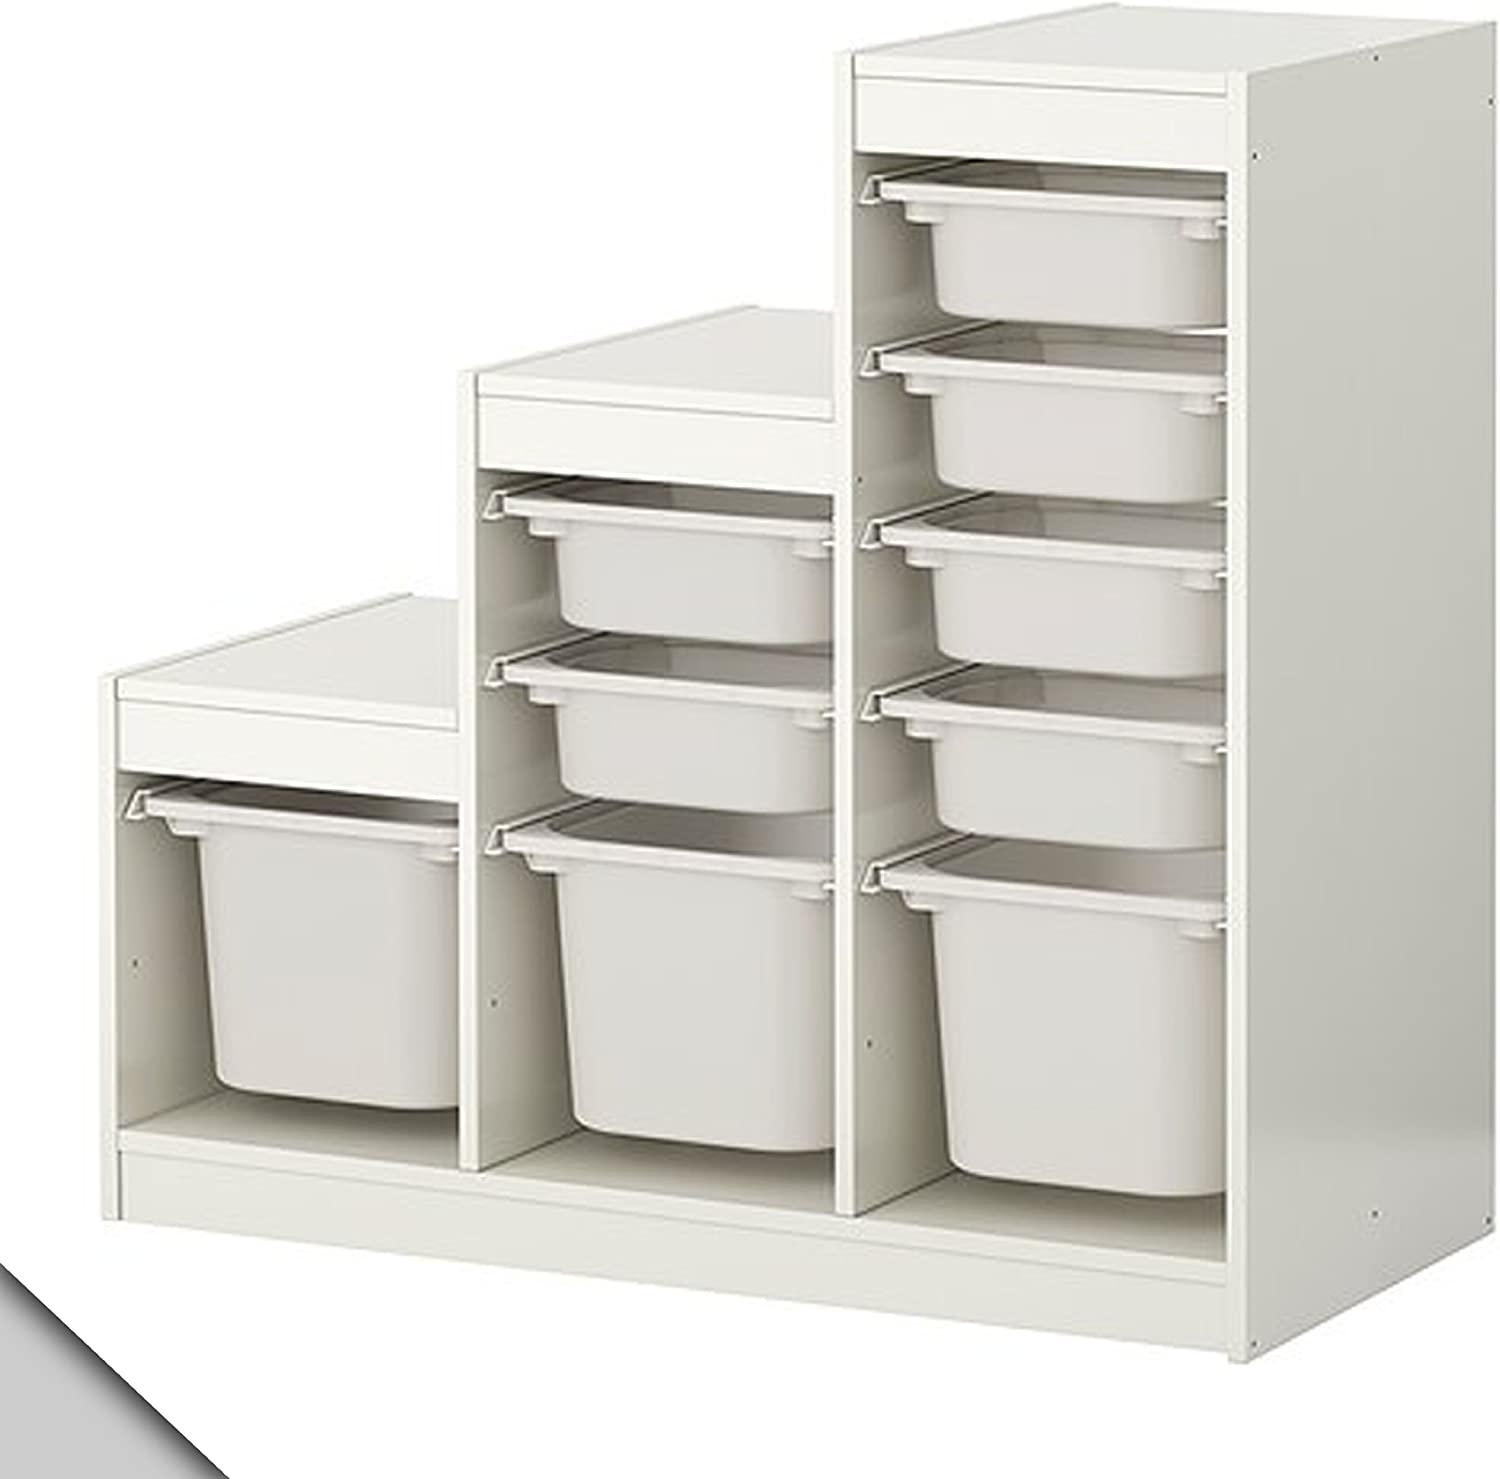 Organizer Shelf Ikea